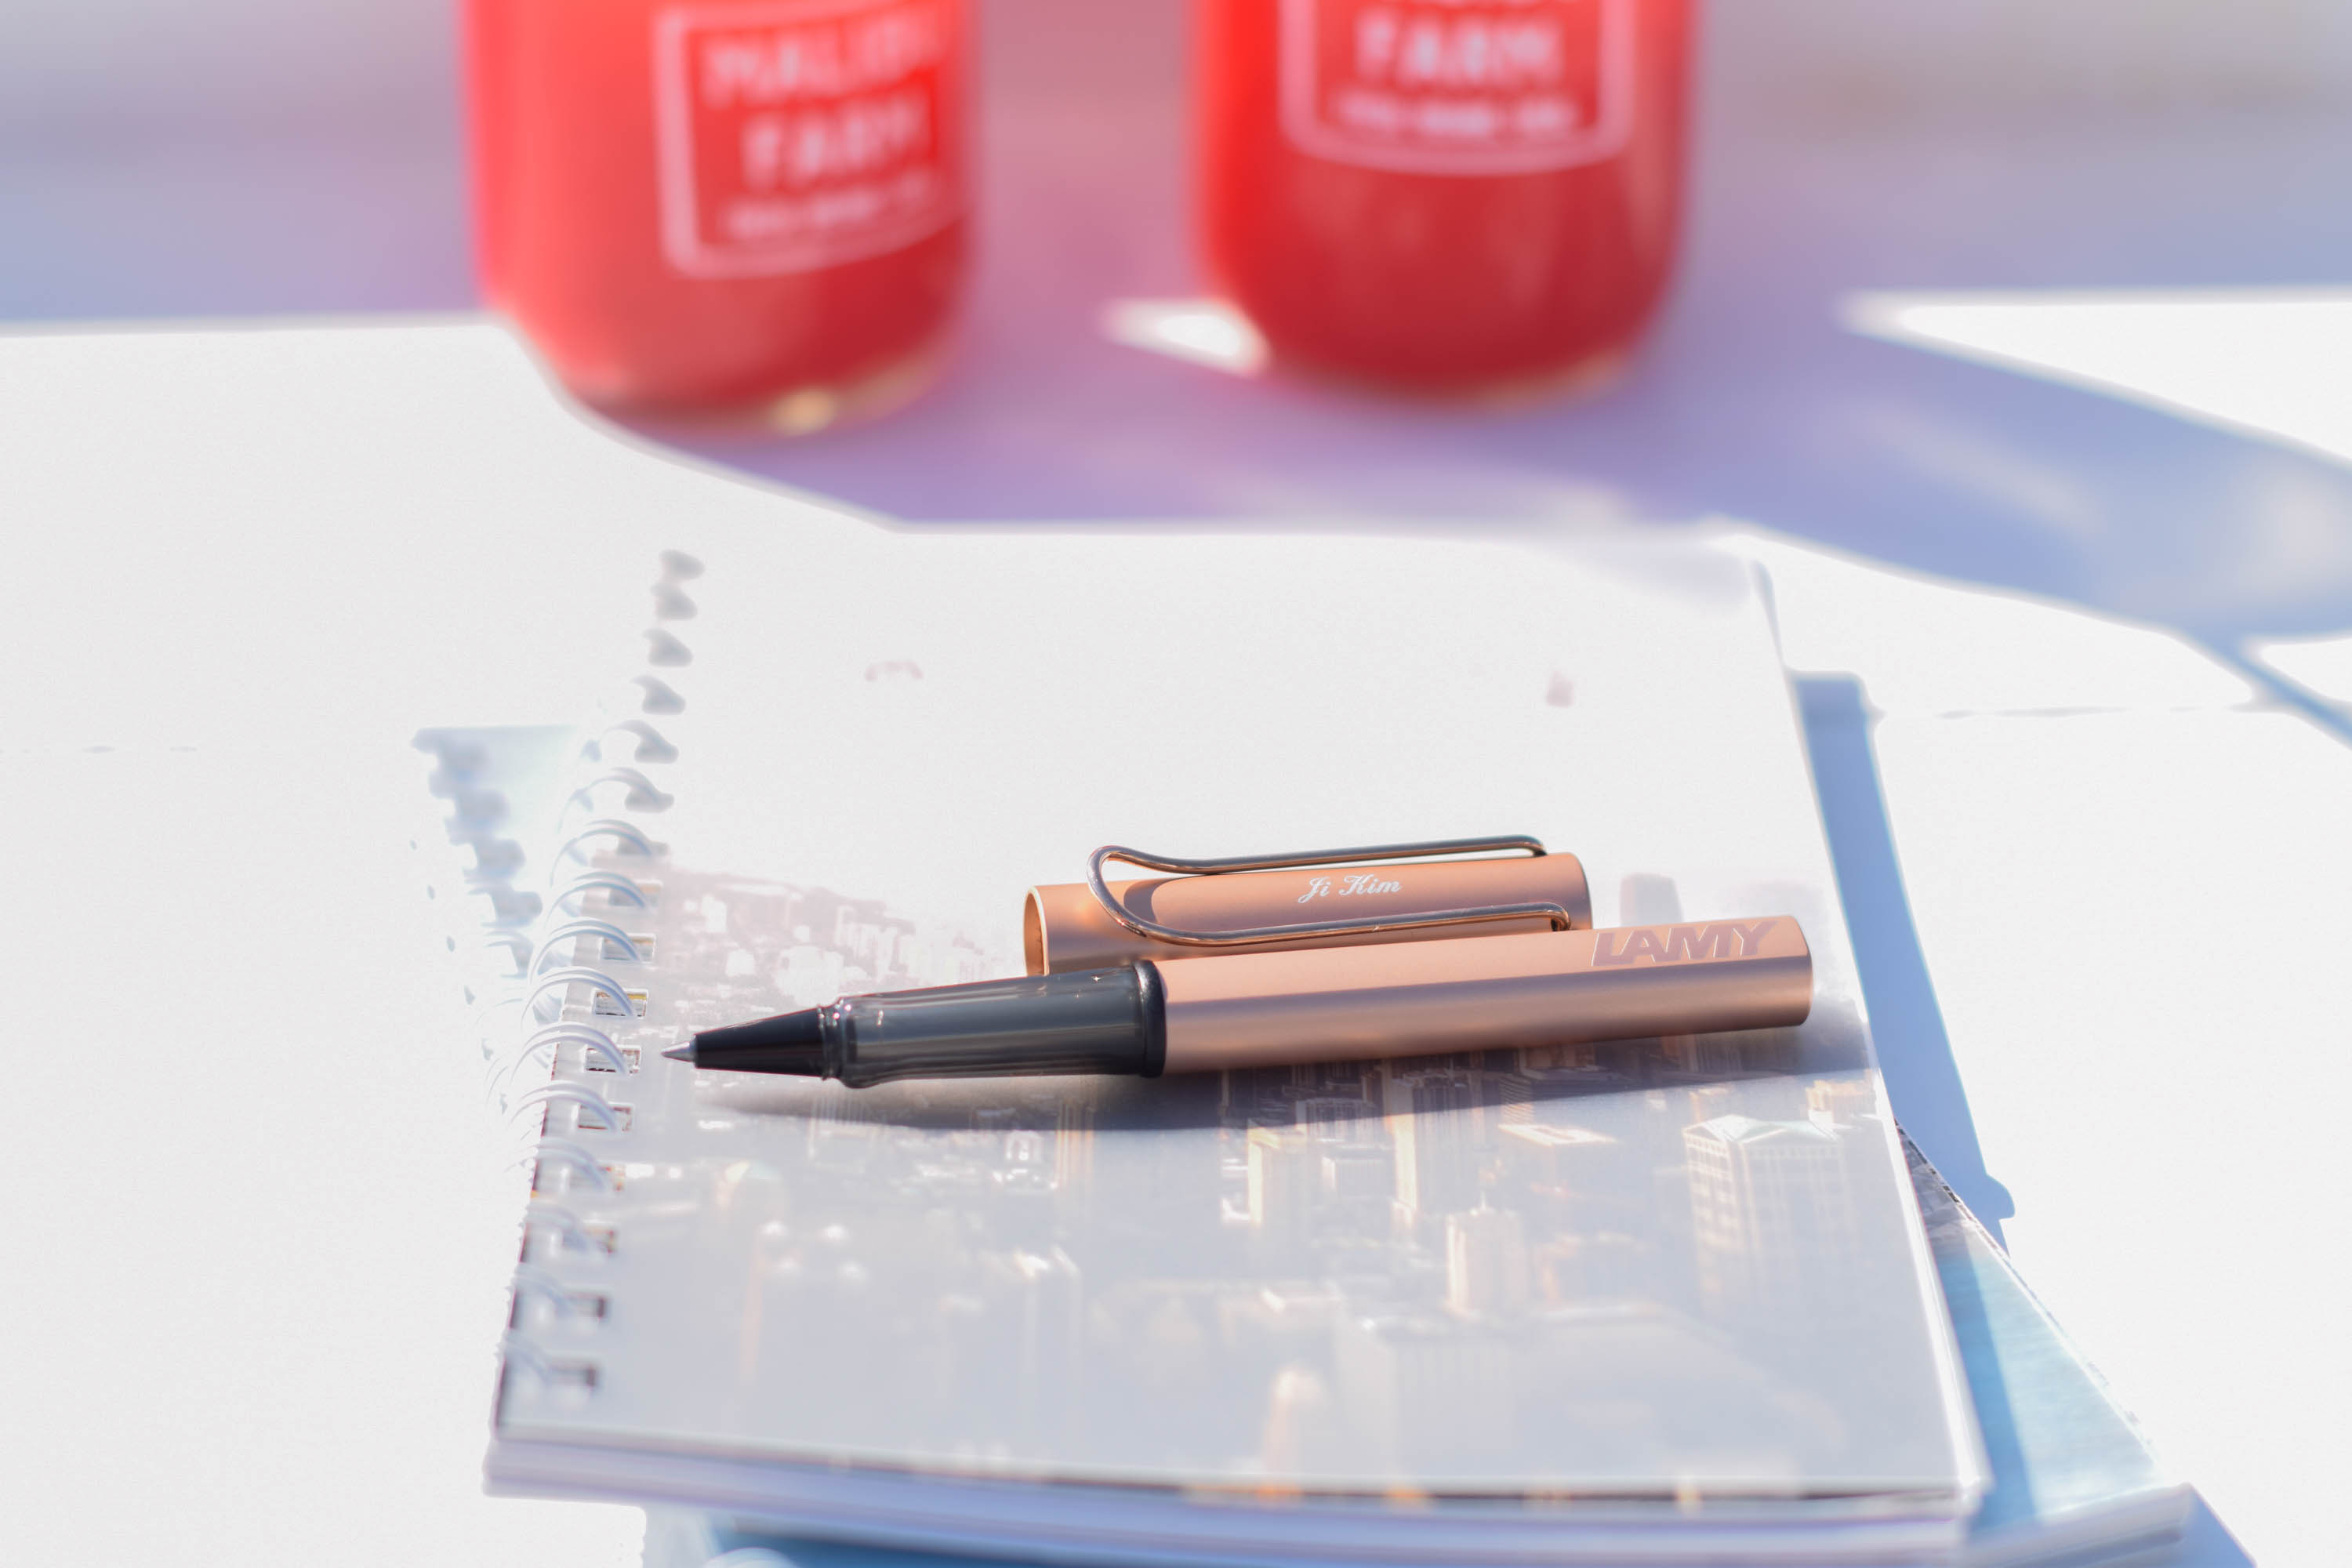 Write In Style With Lamy The Classy Cloud Rollarball Fountain Pen Diagram A I Was Always Person Who Takes Notes By Hand For One Simple Reason If Dont Tend To Forget Things Im Really Attachted My Rosegold Lx